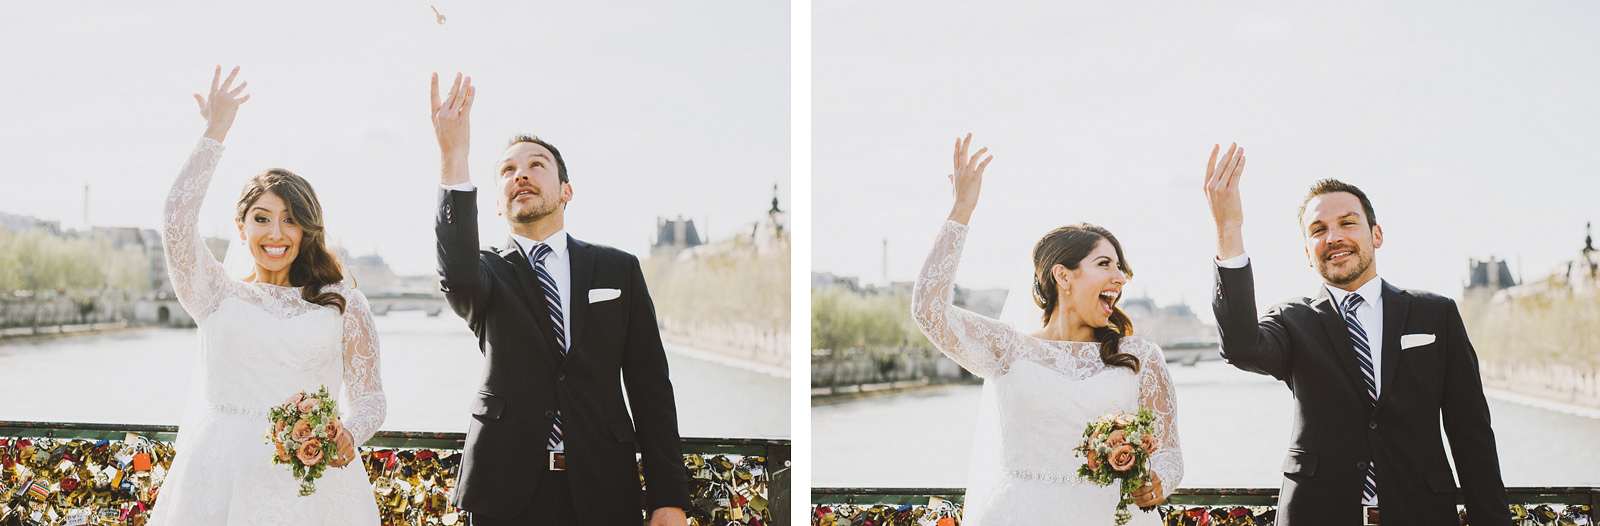 Bride and Groom tossing away their keys at Love Lock Bridge | Springtime Paris Elopement at Parc des Buttes Chaumont